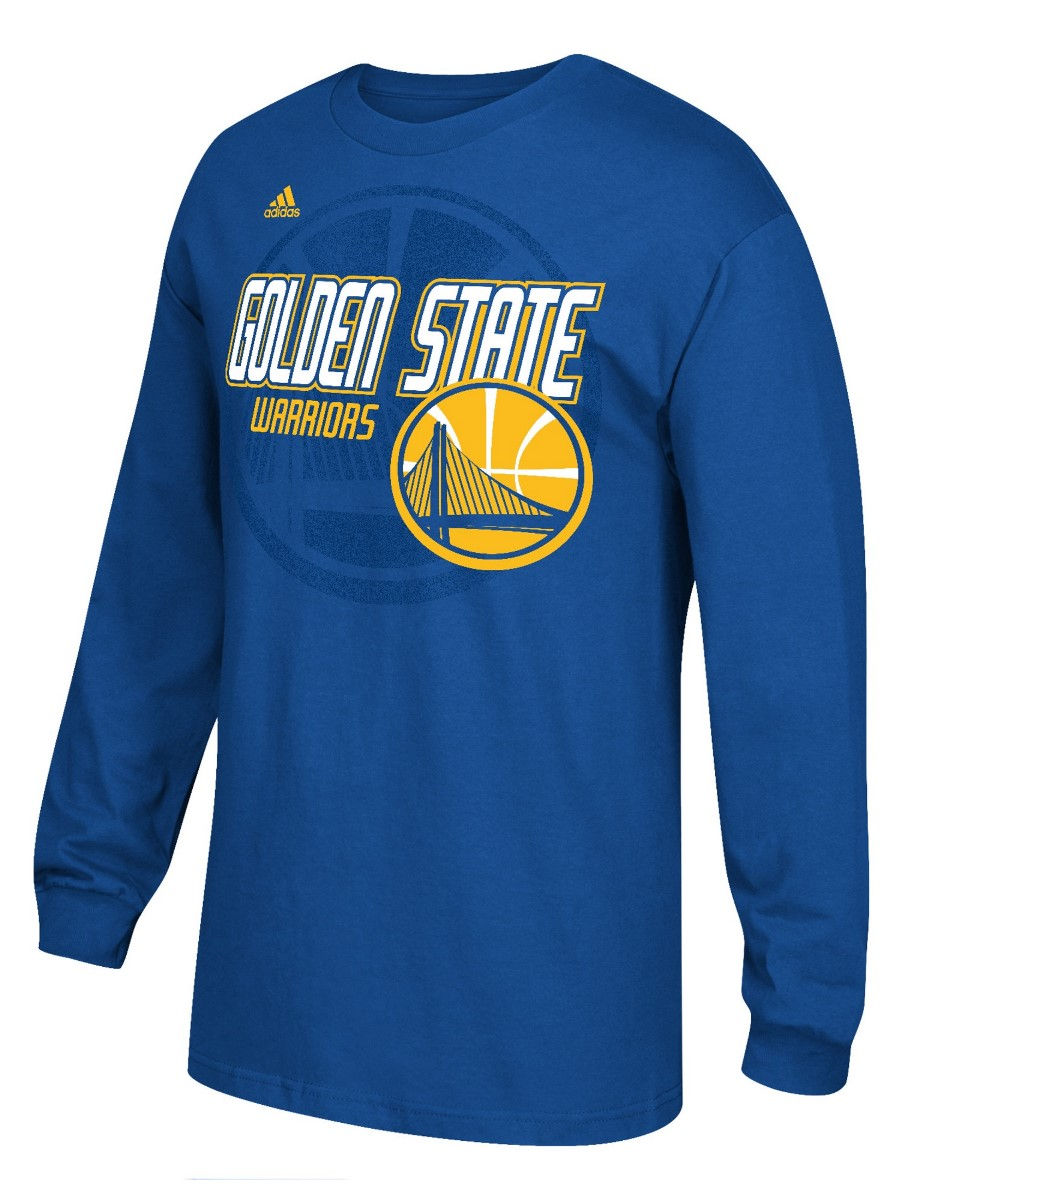 Golden State Warriors Adidas Distressed Back Logo Men's Long Sleeve Blue T-Shirt by Nba